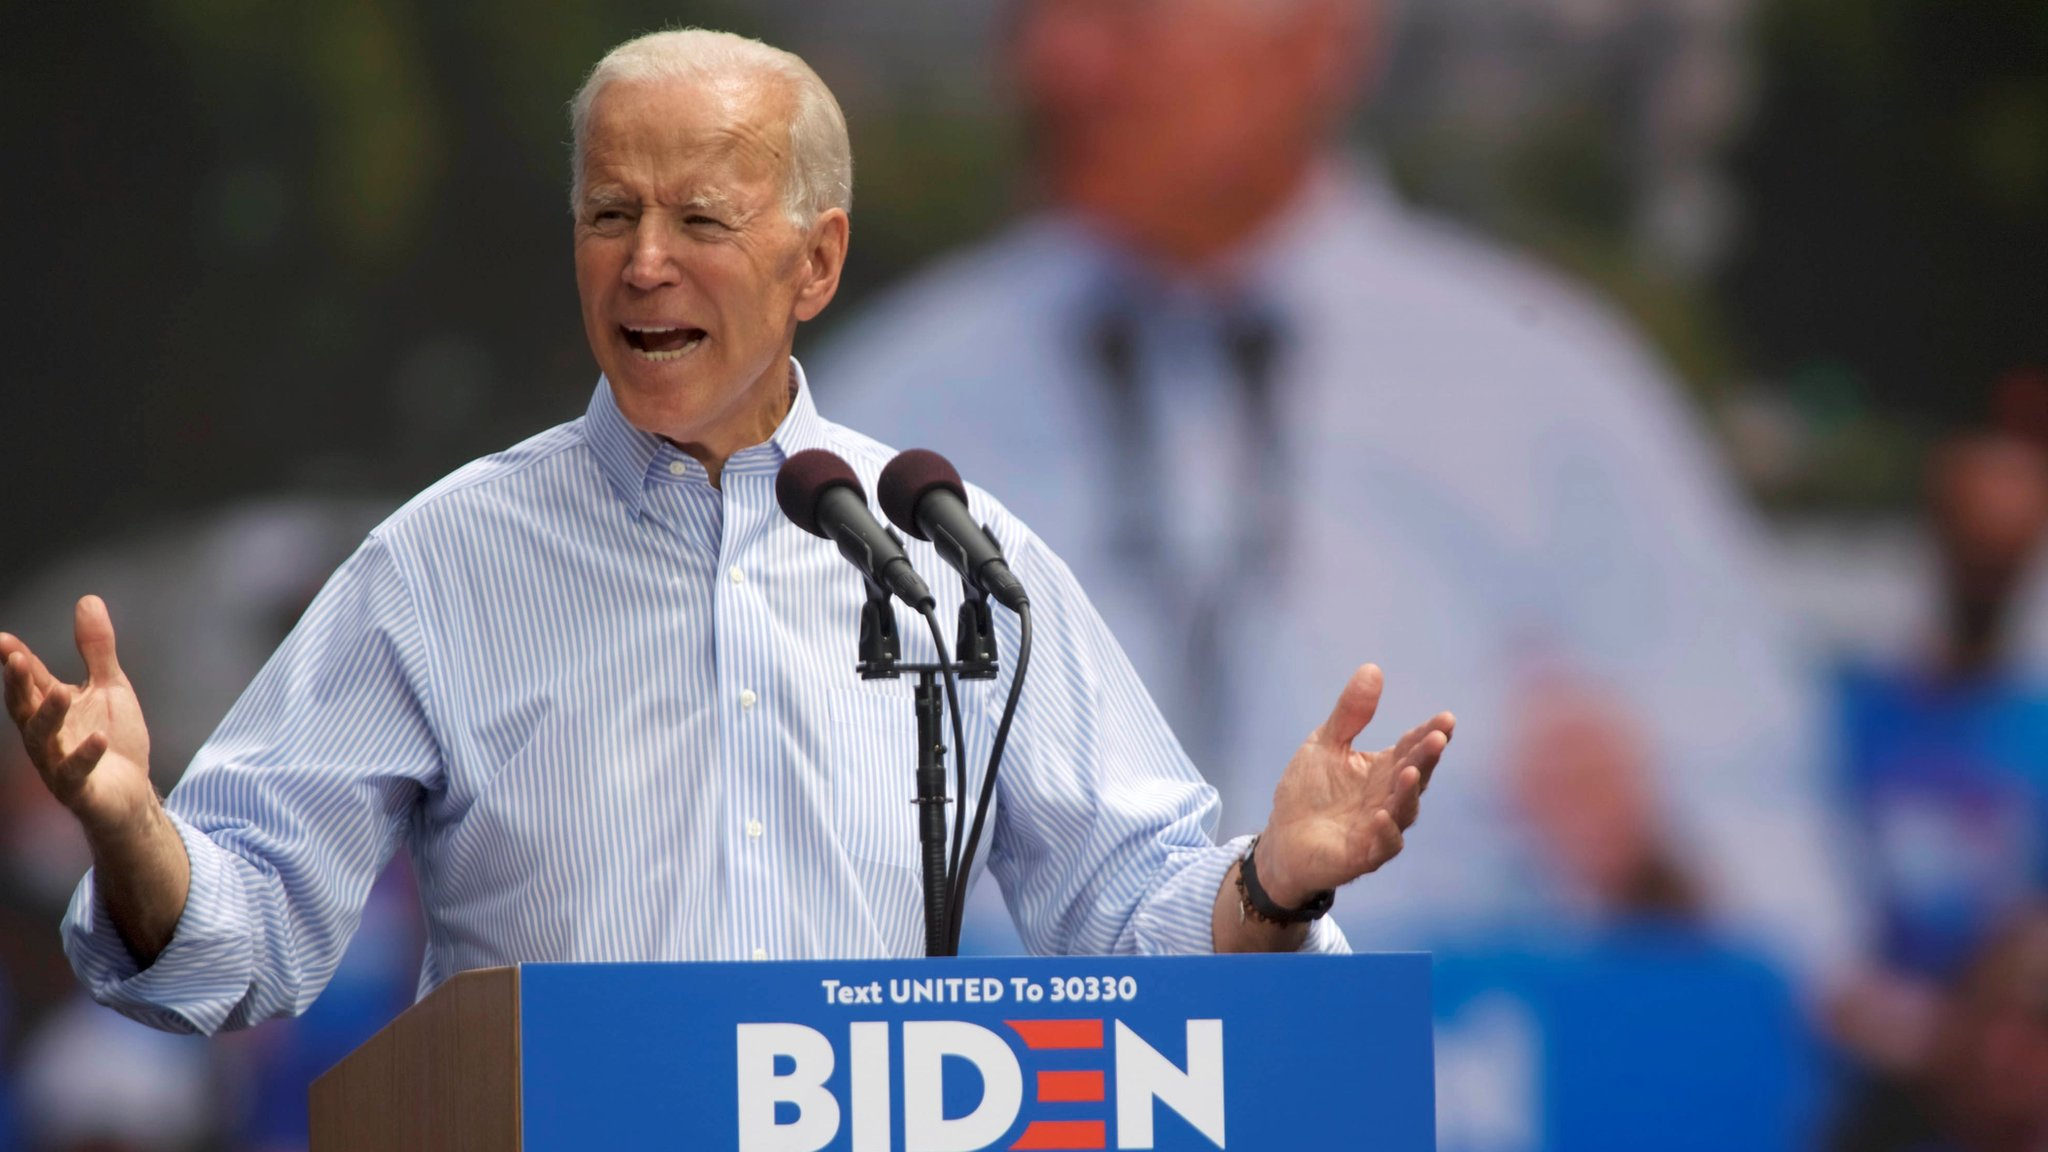 North Korea's Joe Biden 'imbecile' insult and what it tells us